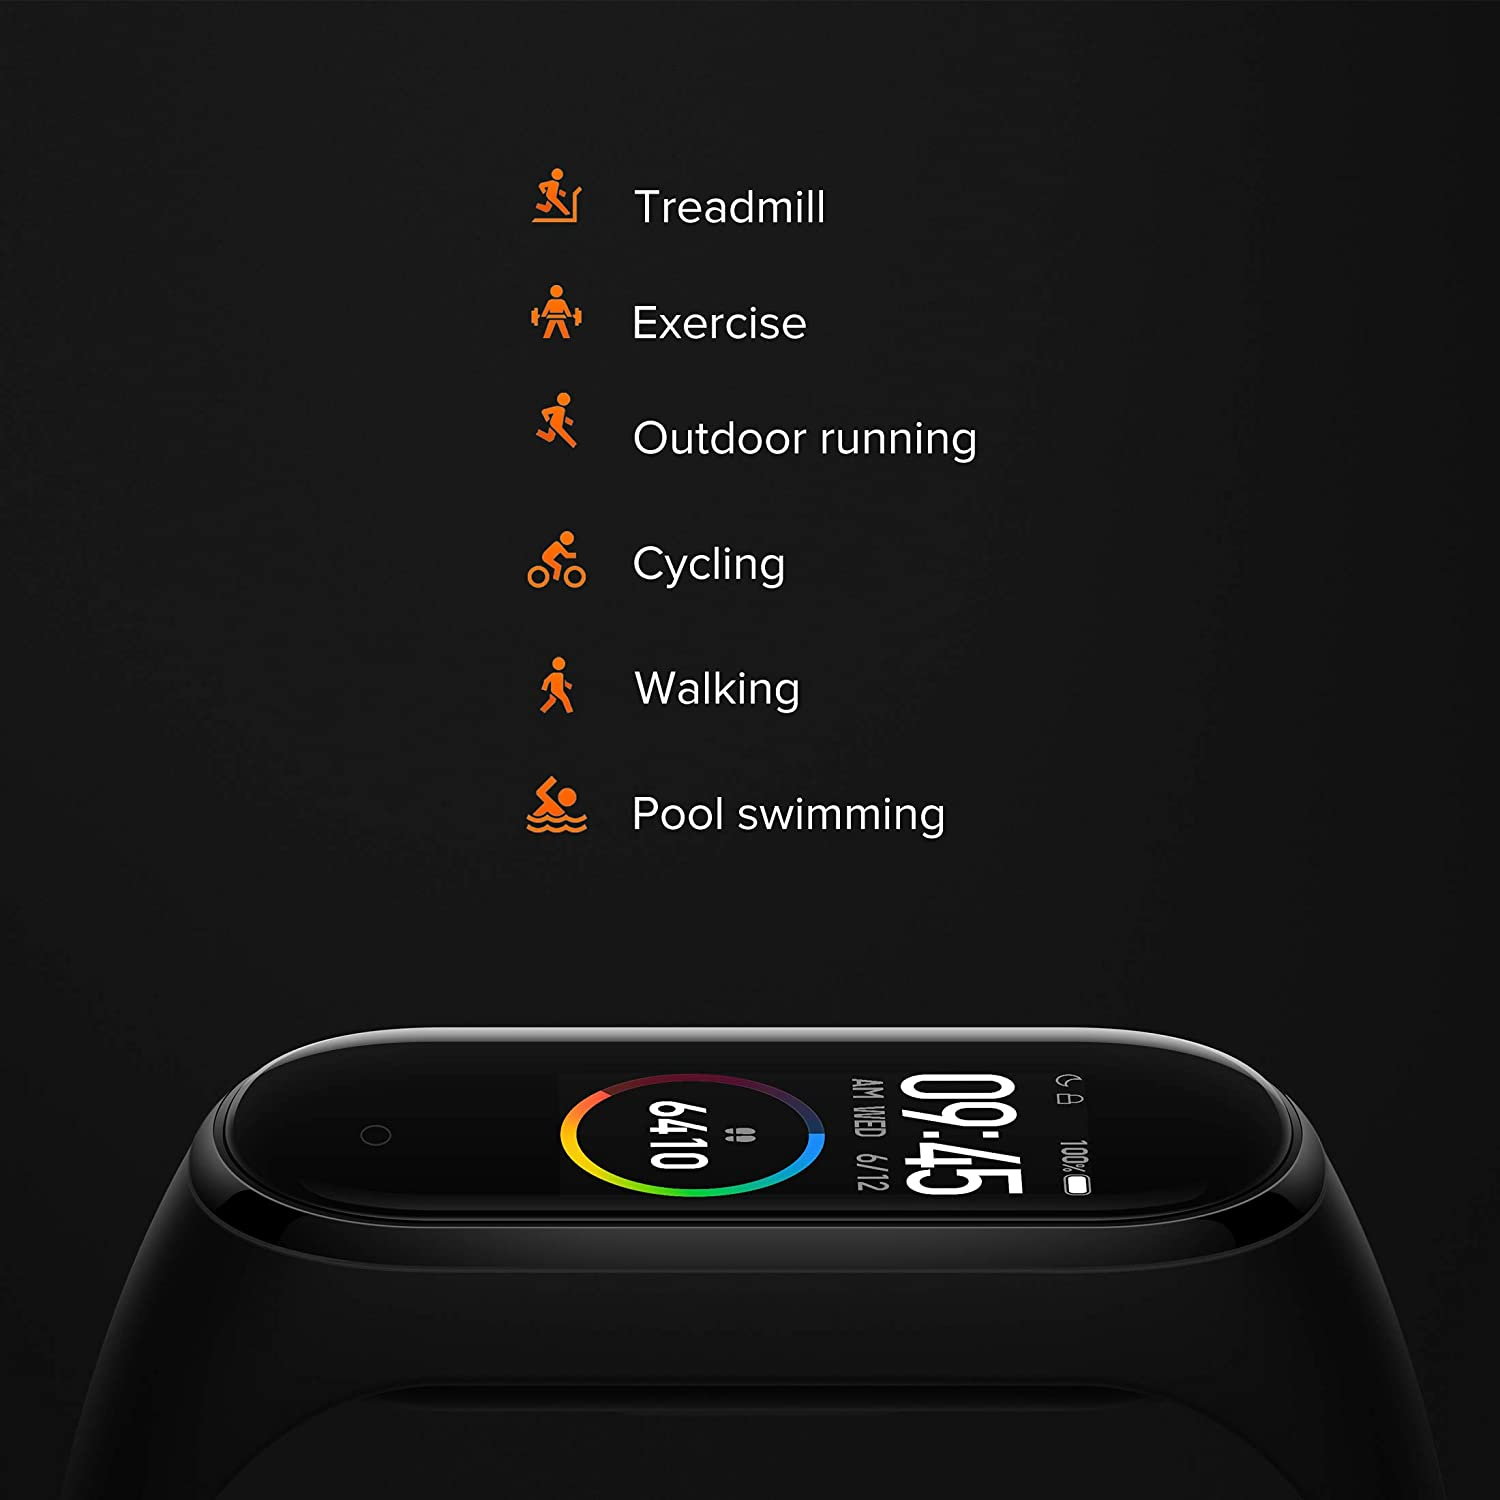 Mi Smart Band 4: Activity Tracking And Heart Rate Monitoring